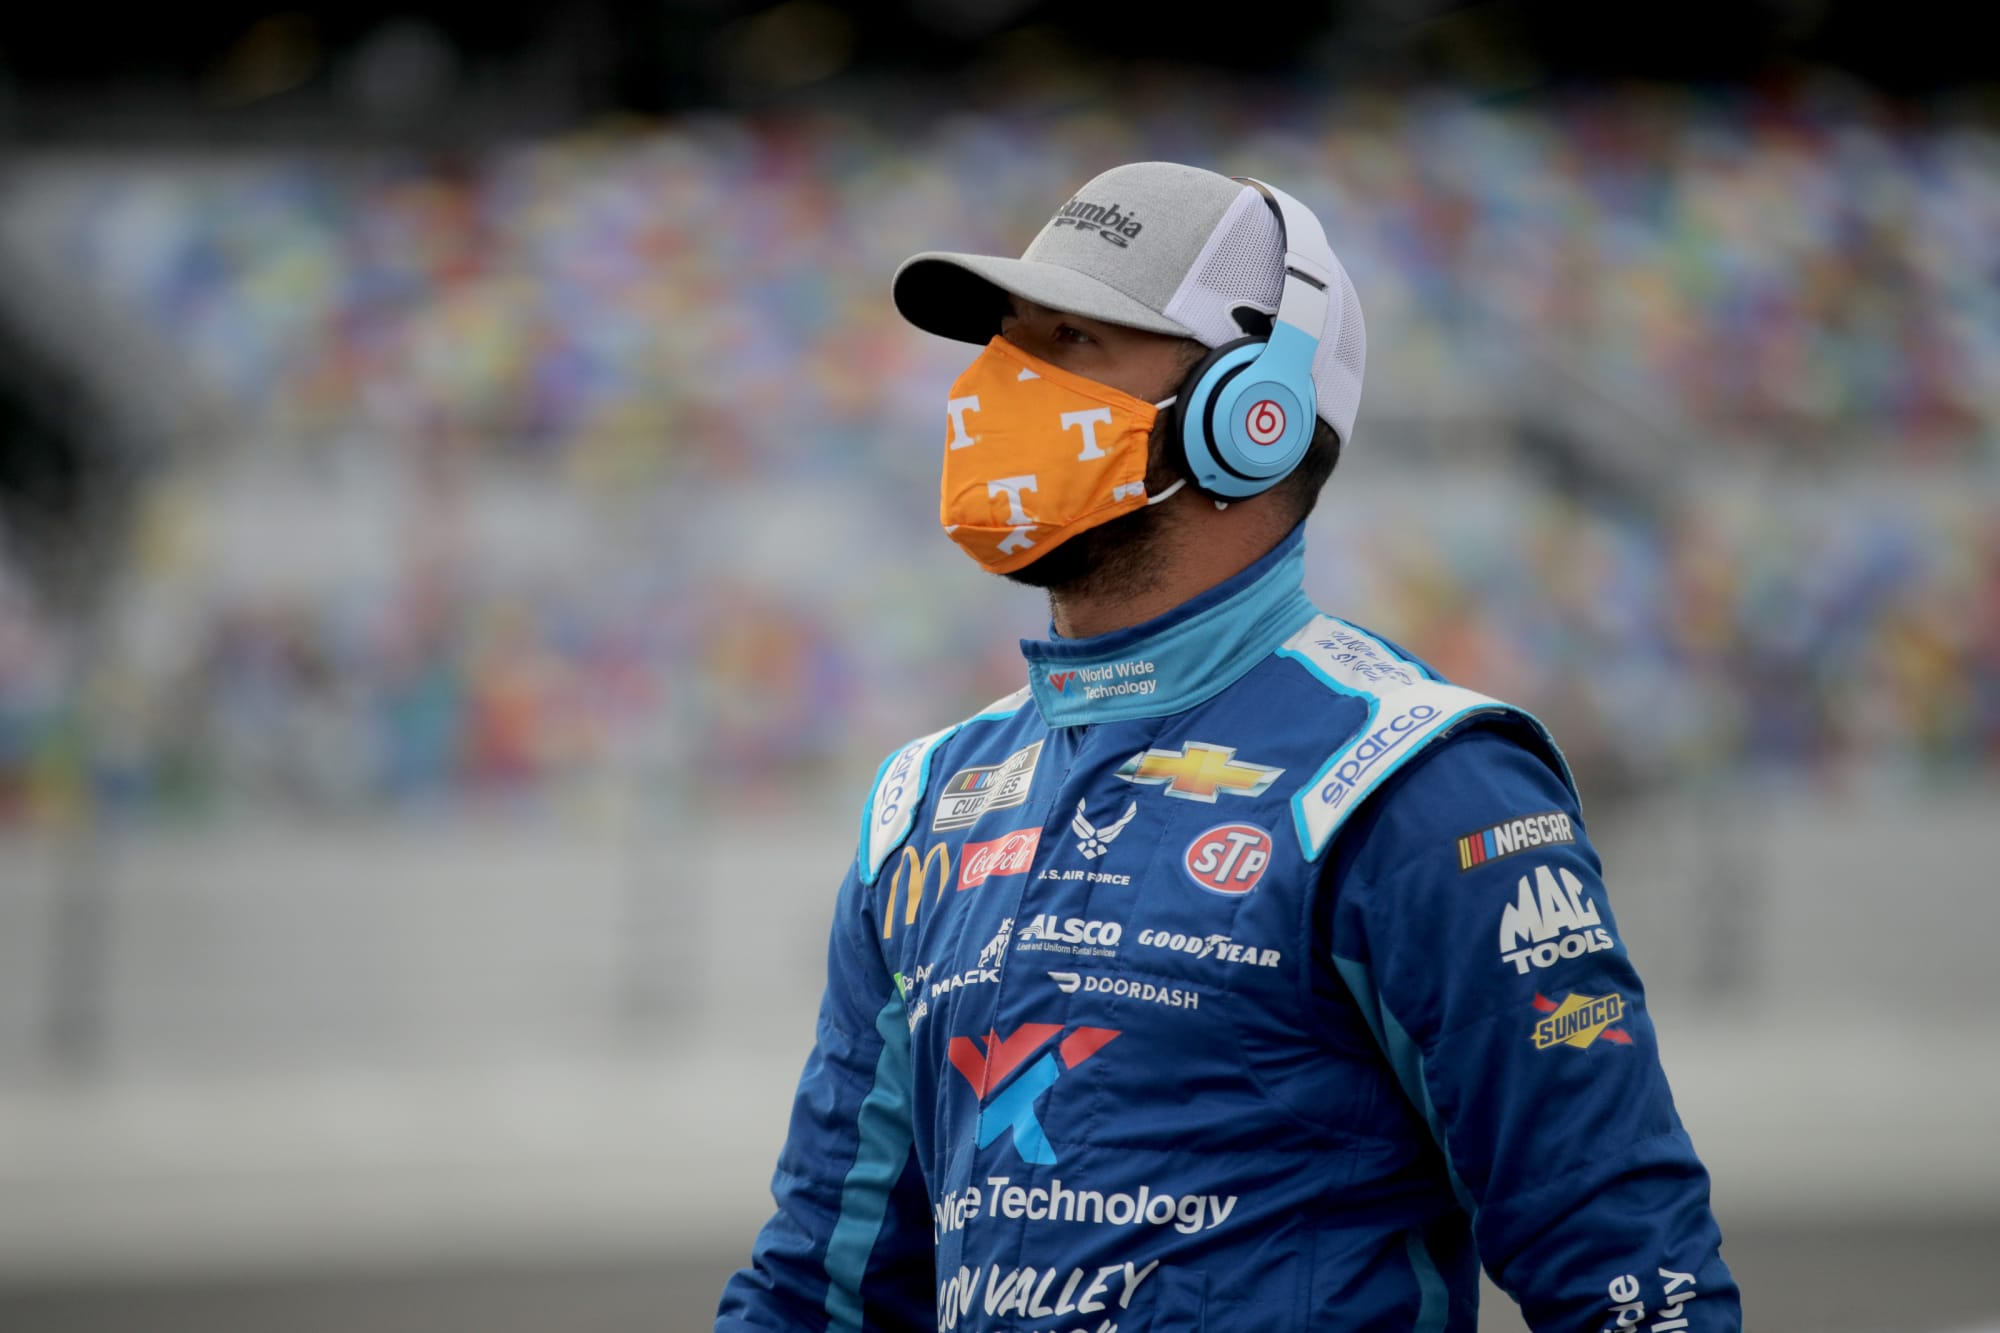 NASCAR: 3 possible landing spots for Bubba Wallace in 2021